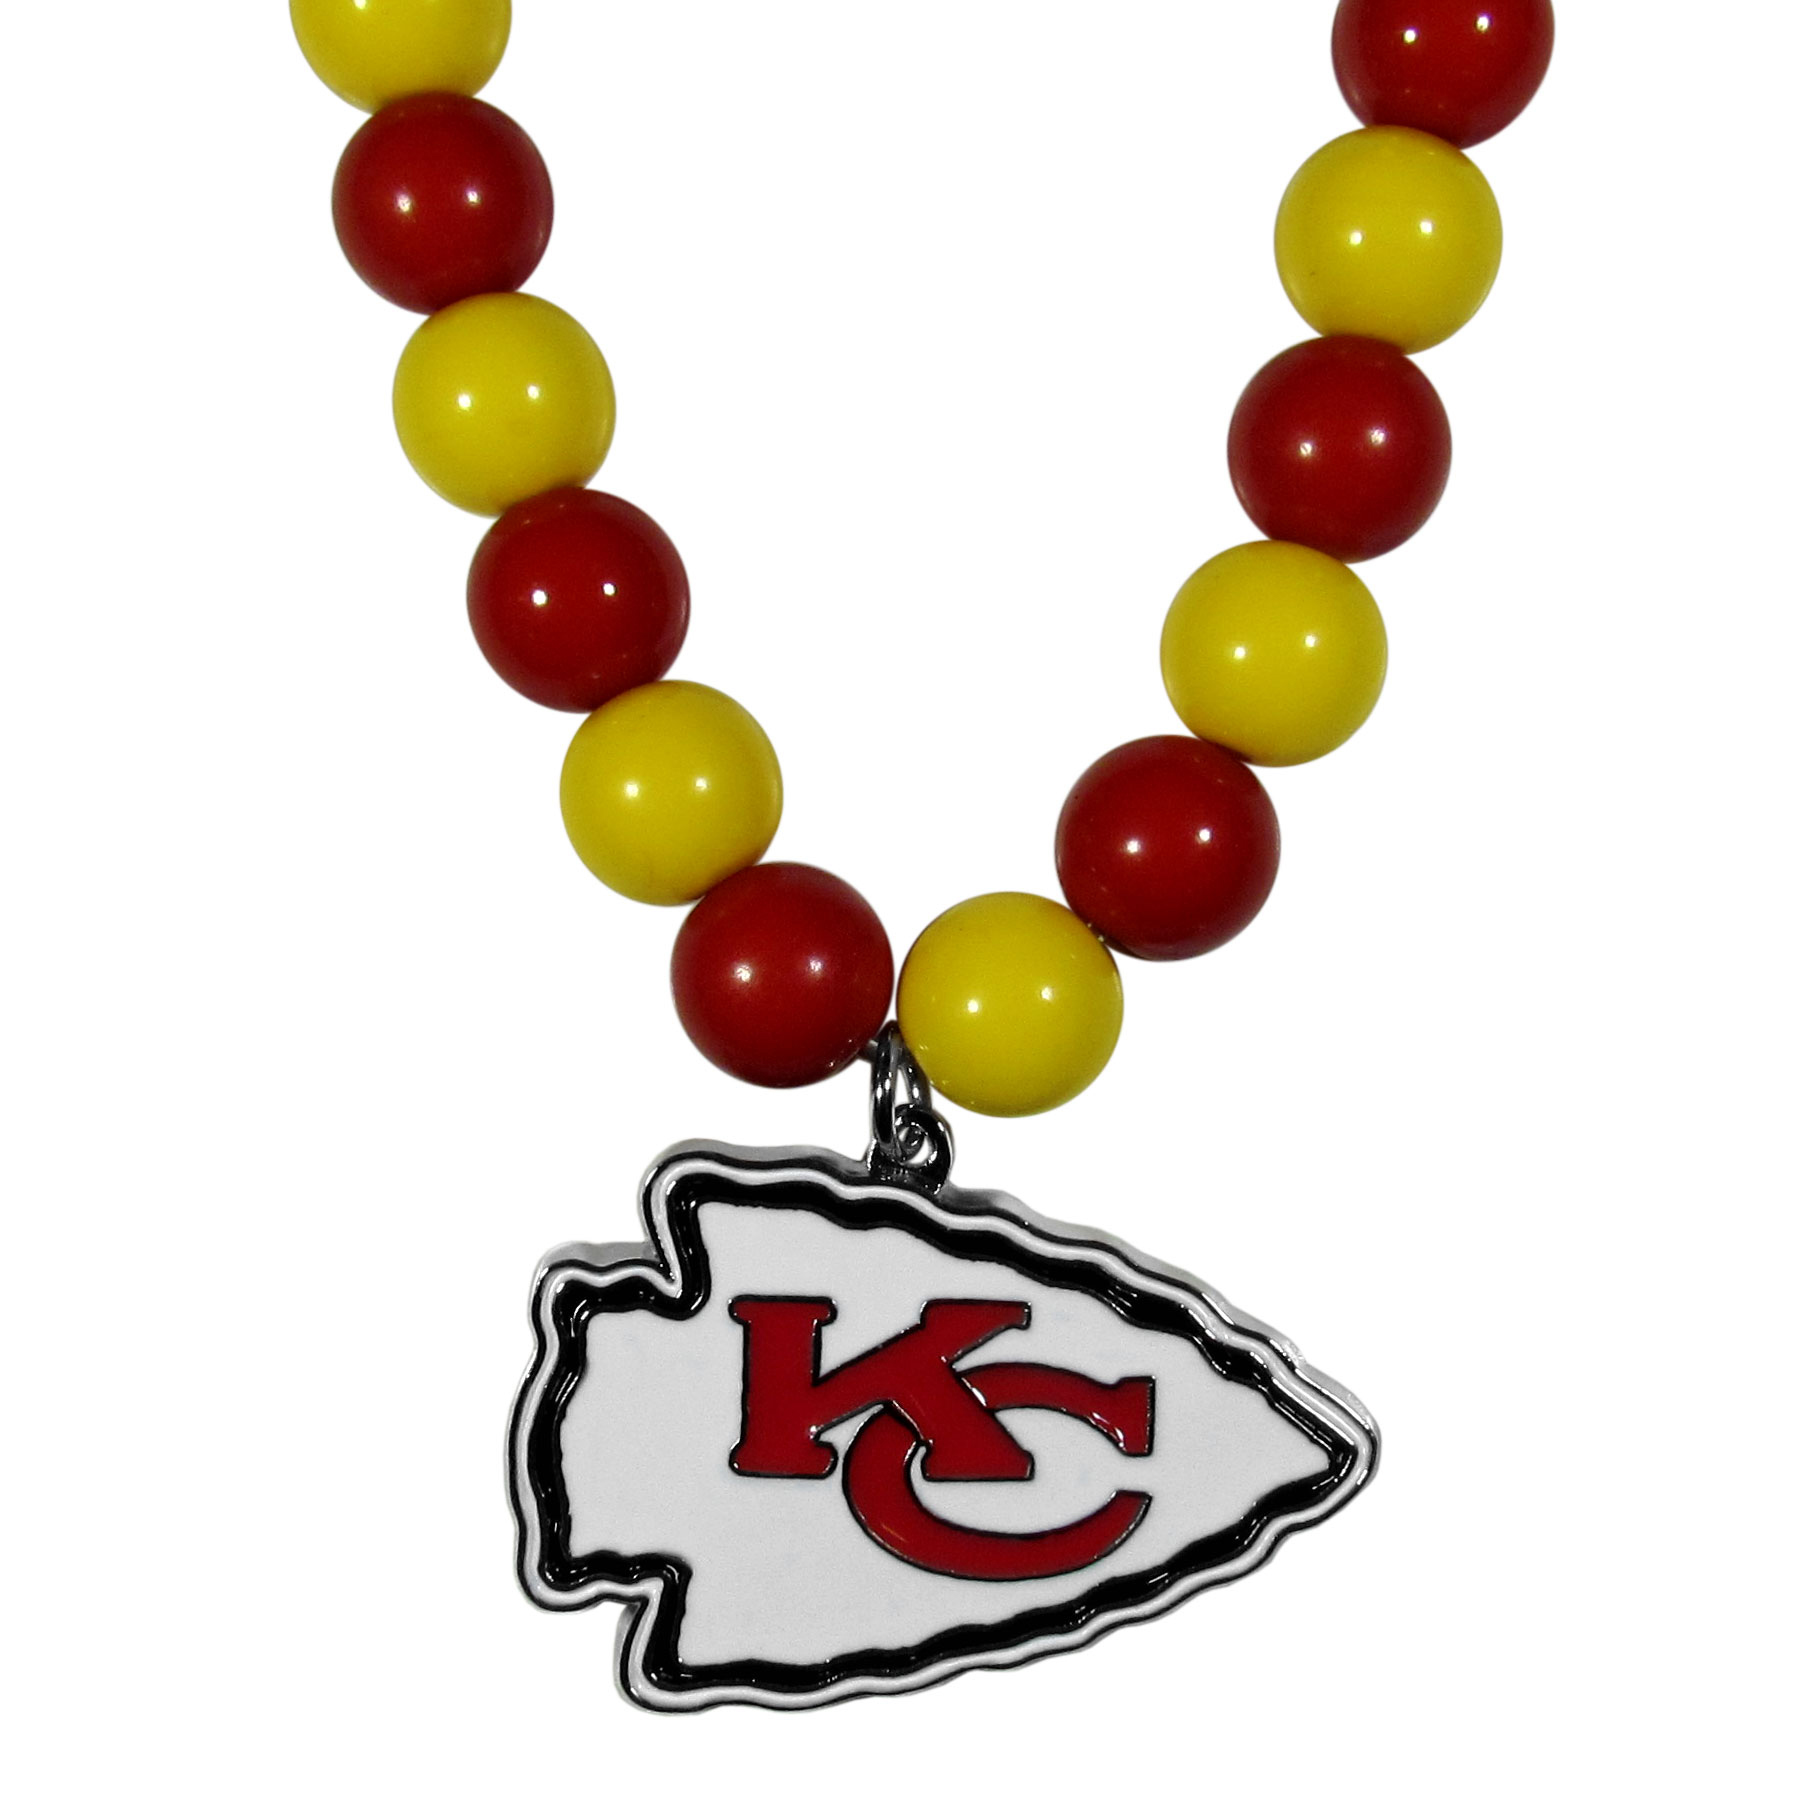 Kansas City Chiefs Fan Bead Necklace - Make a big statement with our bold fan bead necklaces! The 24 inch stretch string is beaded with 66 alternating color beads to make an eye-catching necklace that is finished with a high polish, large Kansas City Chiefs pendant with enameled team colors. This casual and fun piece is a game day must-have! Fans love the trendy style and sassy look of this popular fashion bead style that get noticed even in a sea of fans. A great gift idea for the fan in your life.